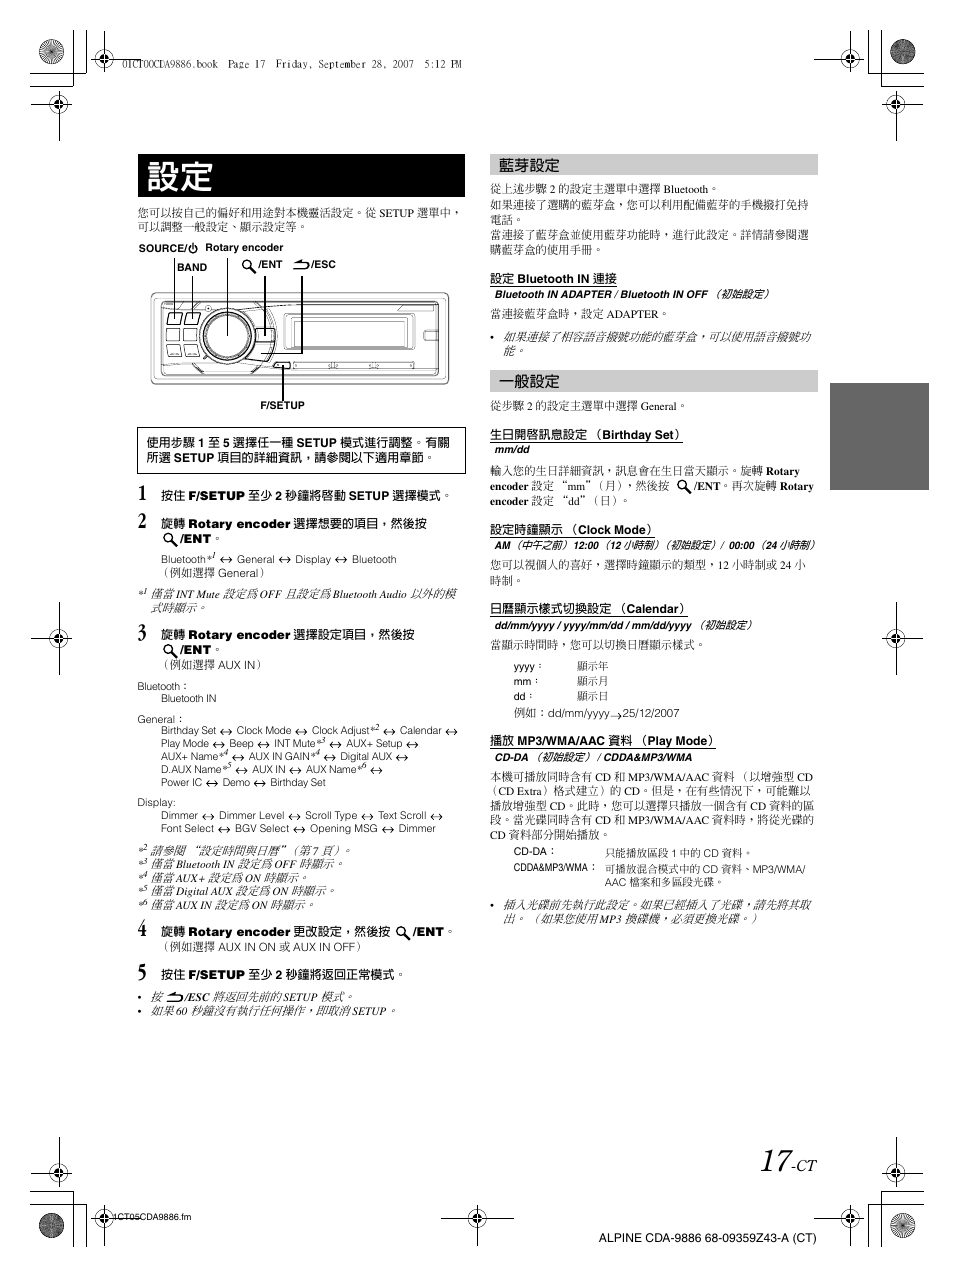 alpine cda 9886 user manual page 61 88 rh manualsdir com alpine cda-9886r manual alpine cda-9886r manual